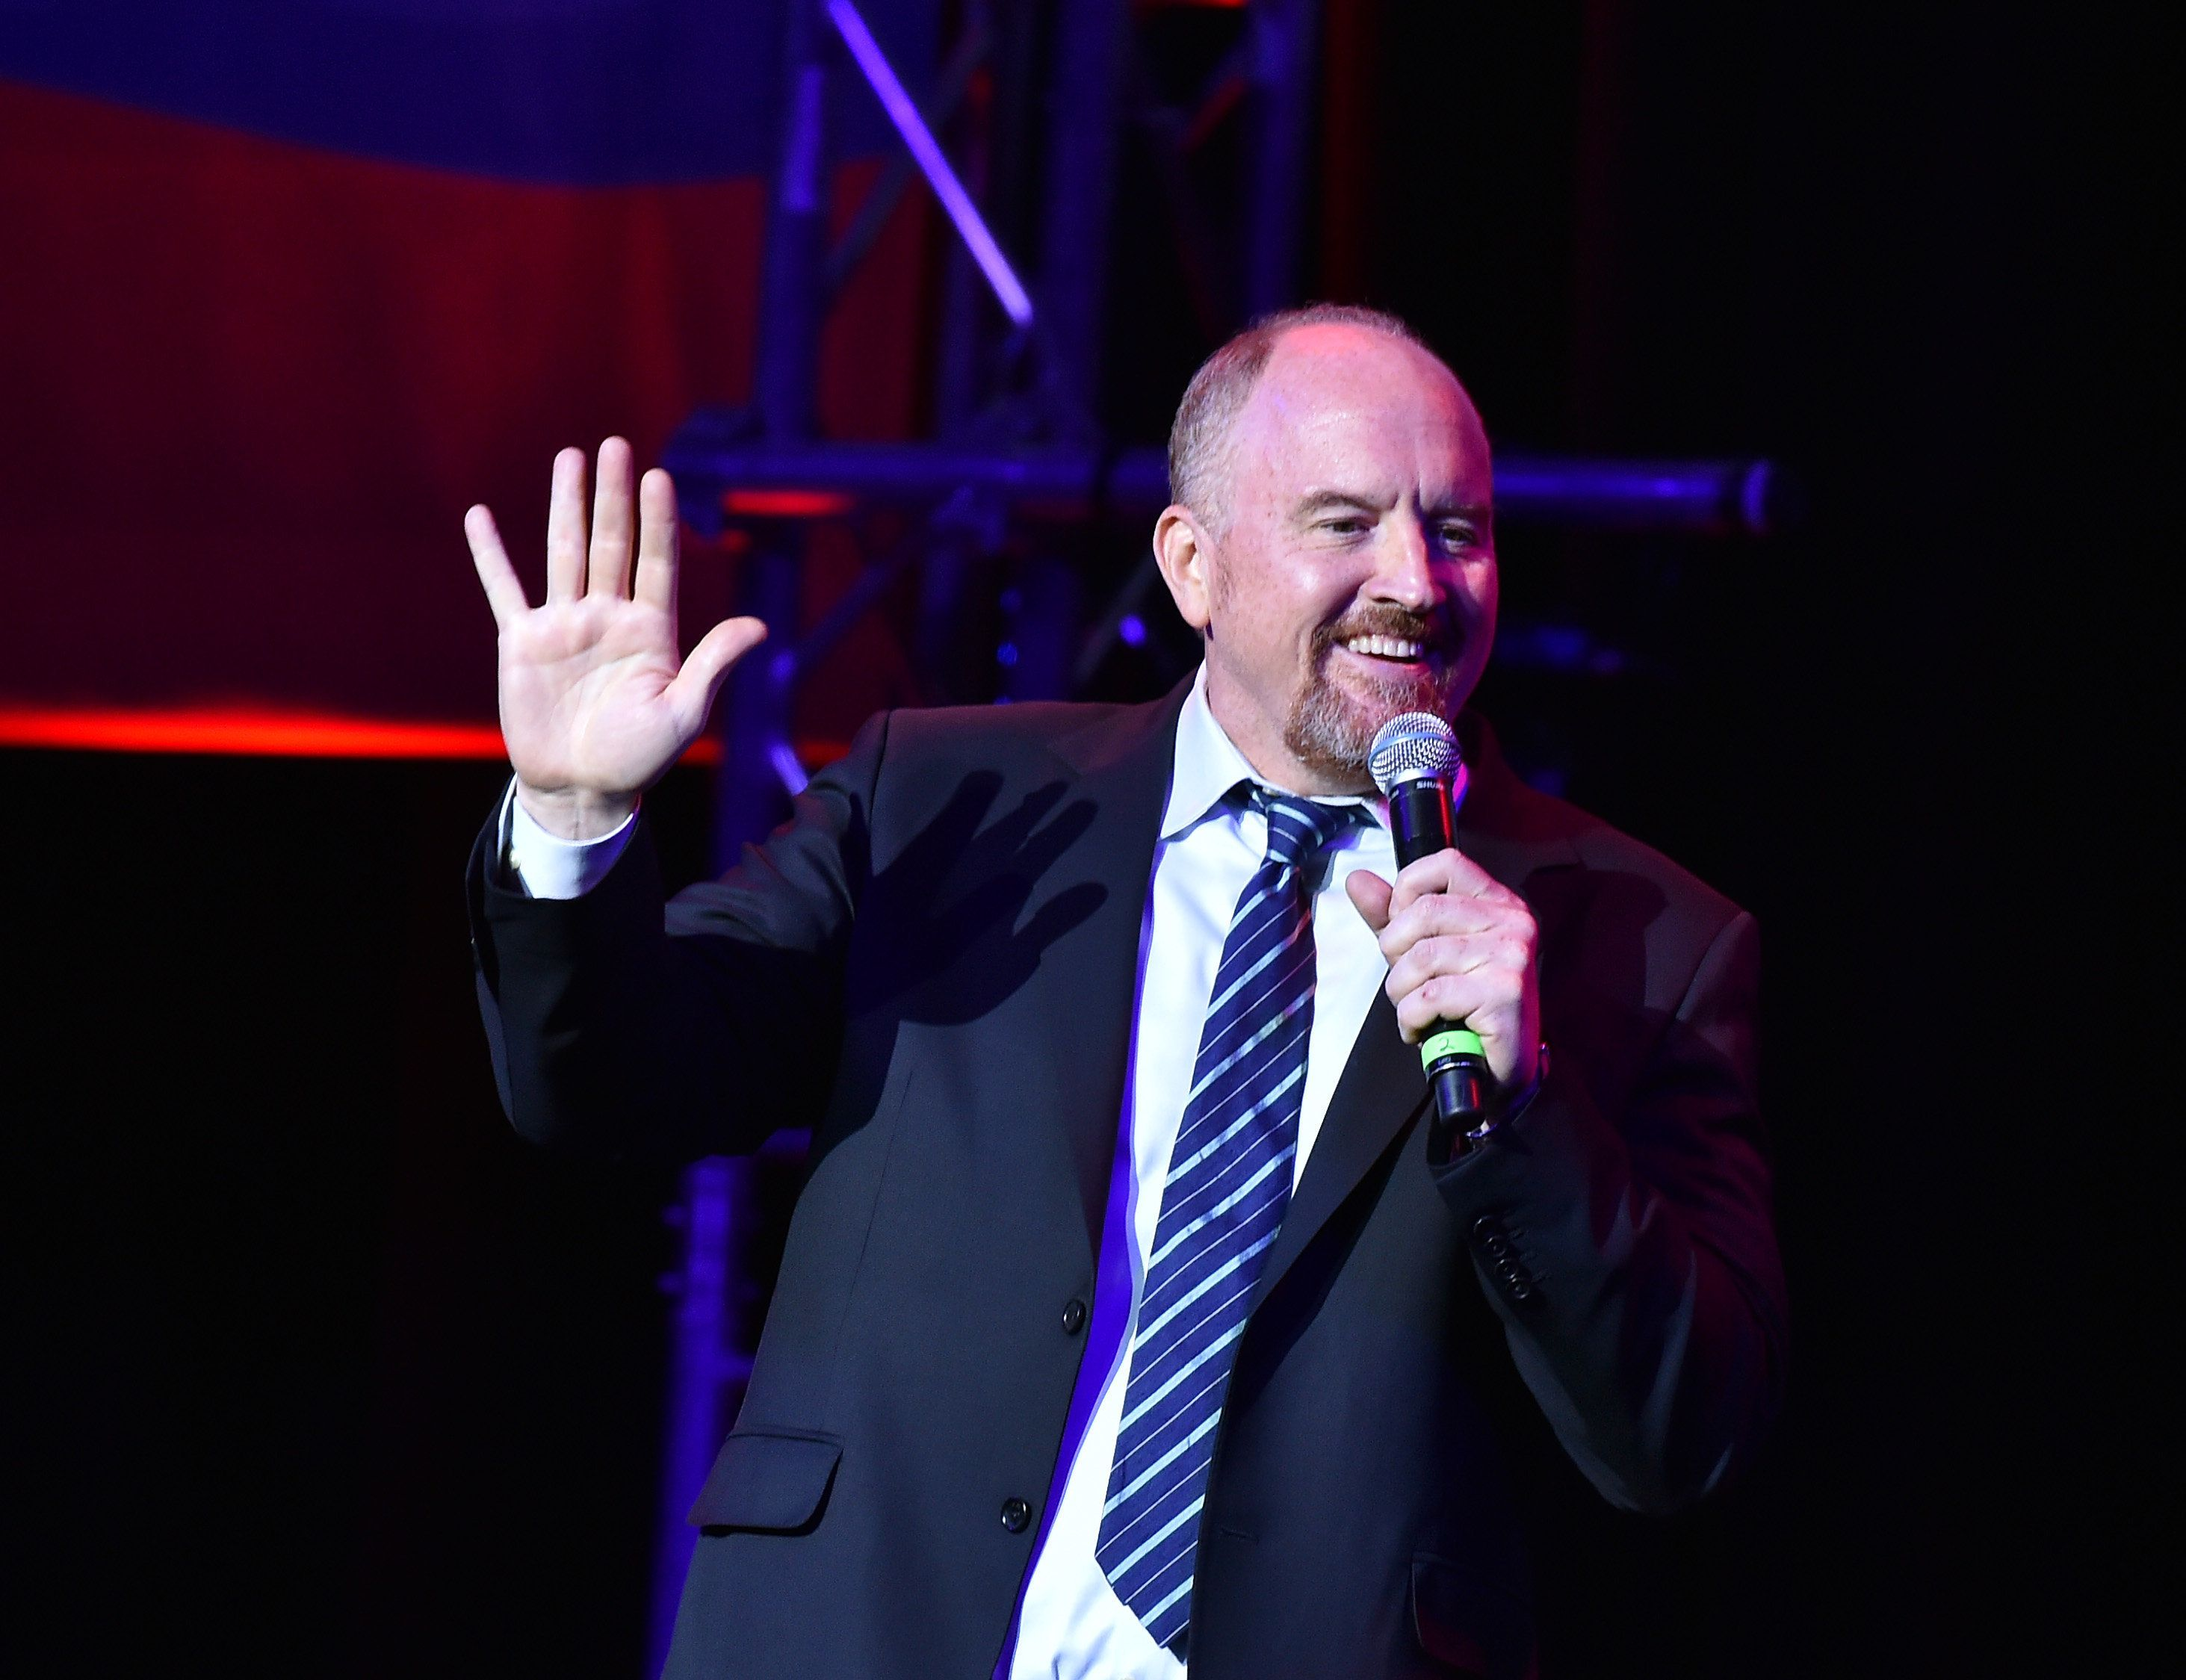 NEW YORK, NY - NOVEMBER 01:  Louis C.K. performs on stage during 10th Annual Stand Up For Heroes at The Theater at Madison Square Garden on November 1, 2016 in New York City.  (Photo by Theo Wargo/Getty Images)